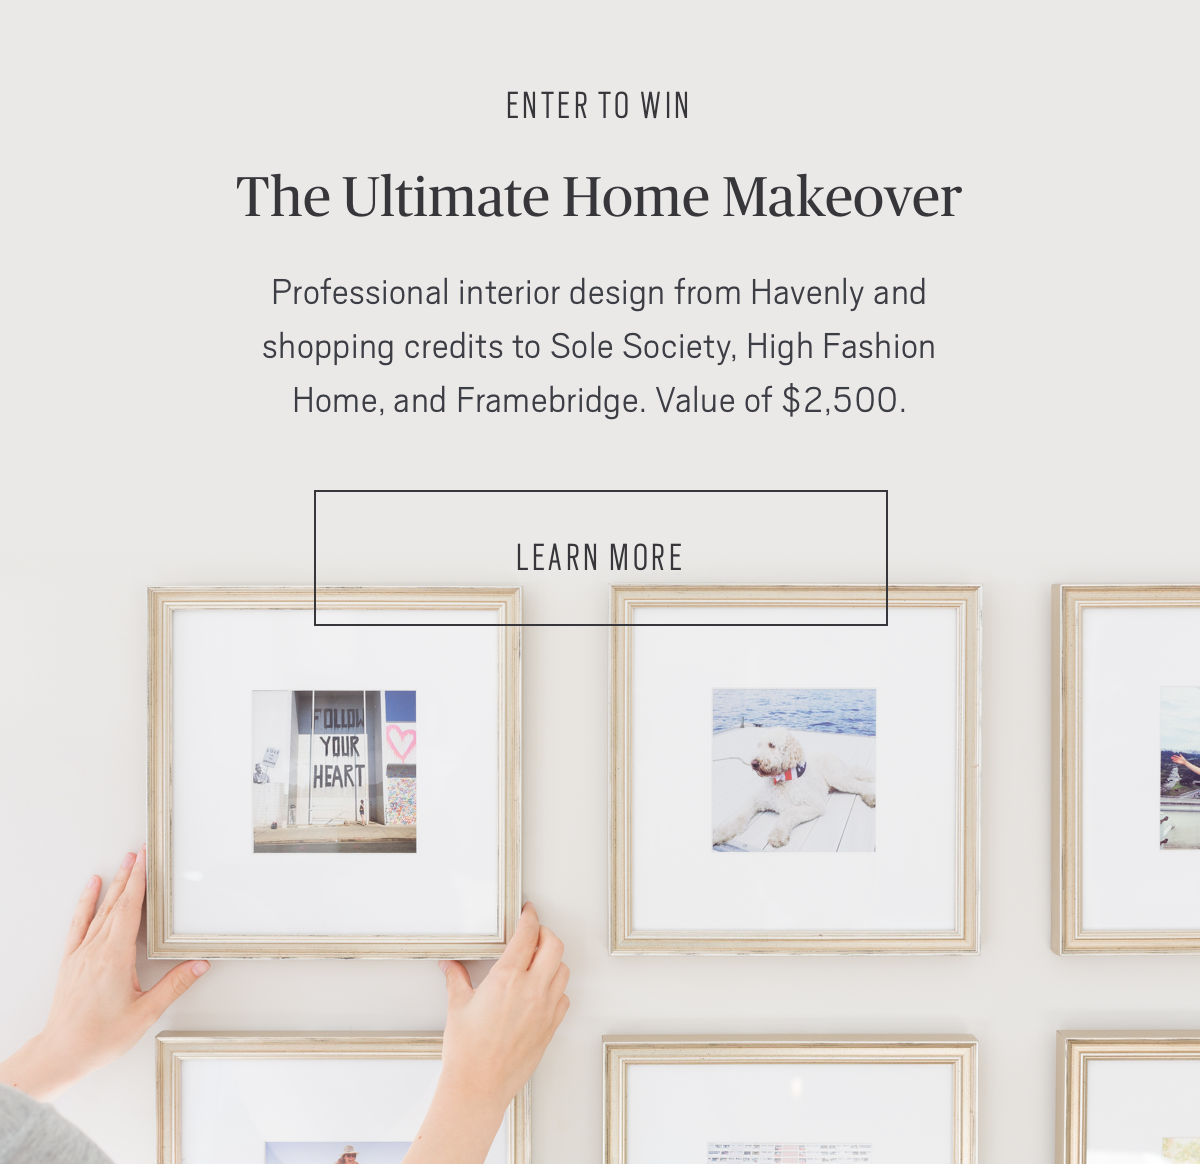 ENTER TO WIN: The Ultimate Home Makeover » Professional interior design from Havenly and shopping credits to Sole Society, High Fashion Home, and Framebridge. Value of $2500.